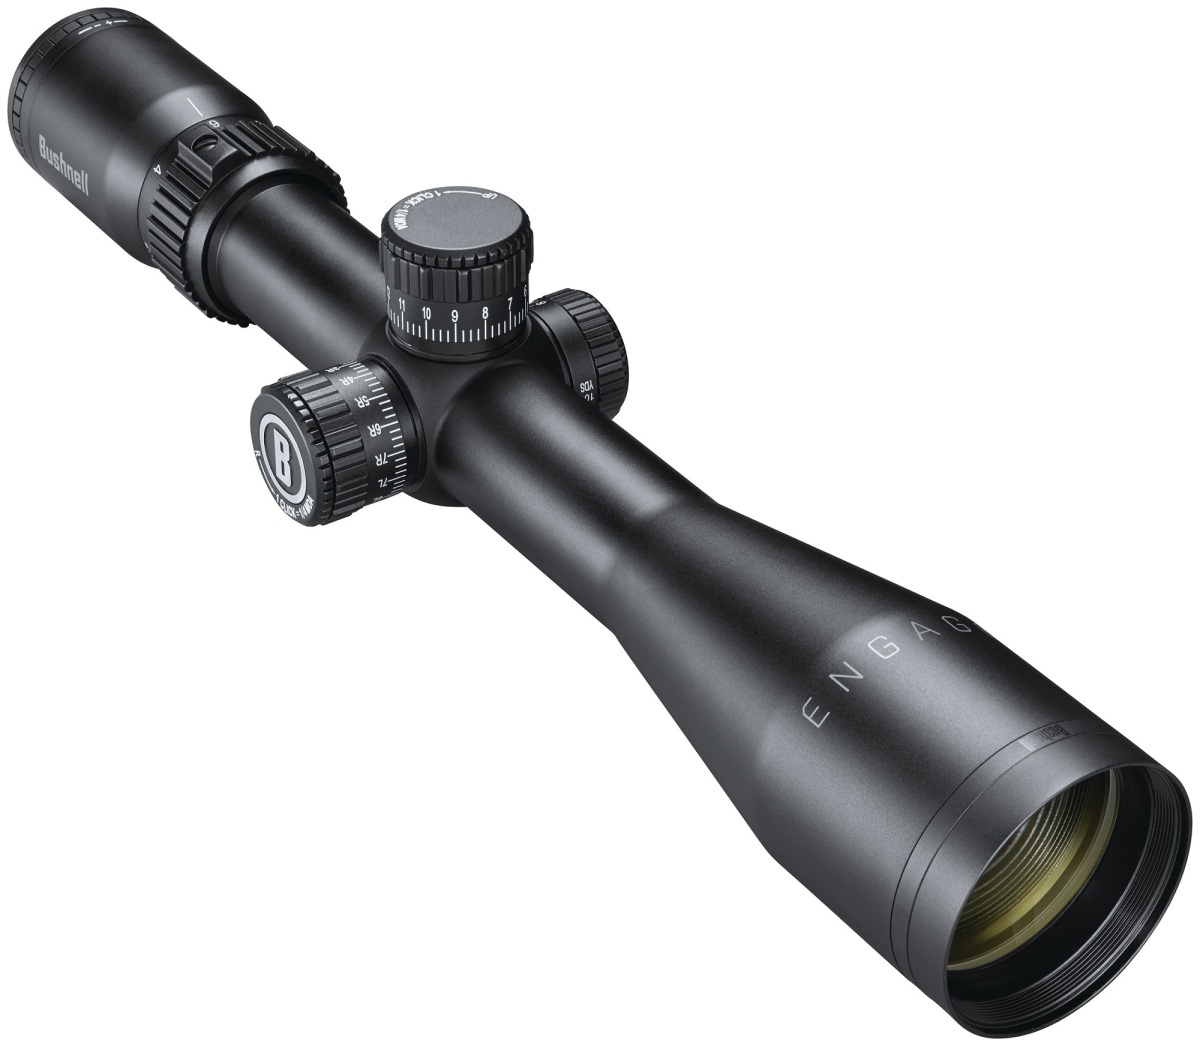 Bushnell Announces New Best-In-Class Engage Optics Line at 2017 NRA Show